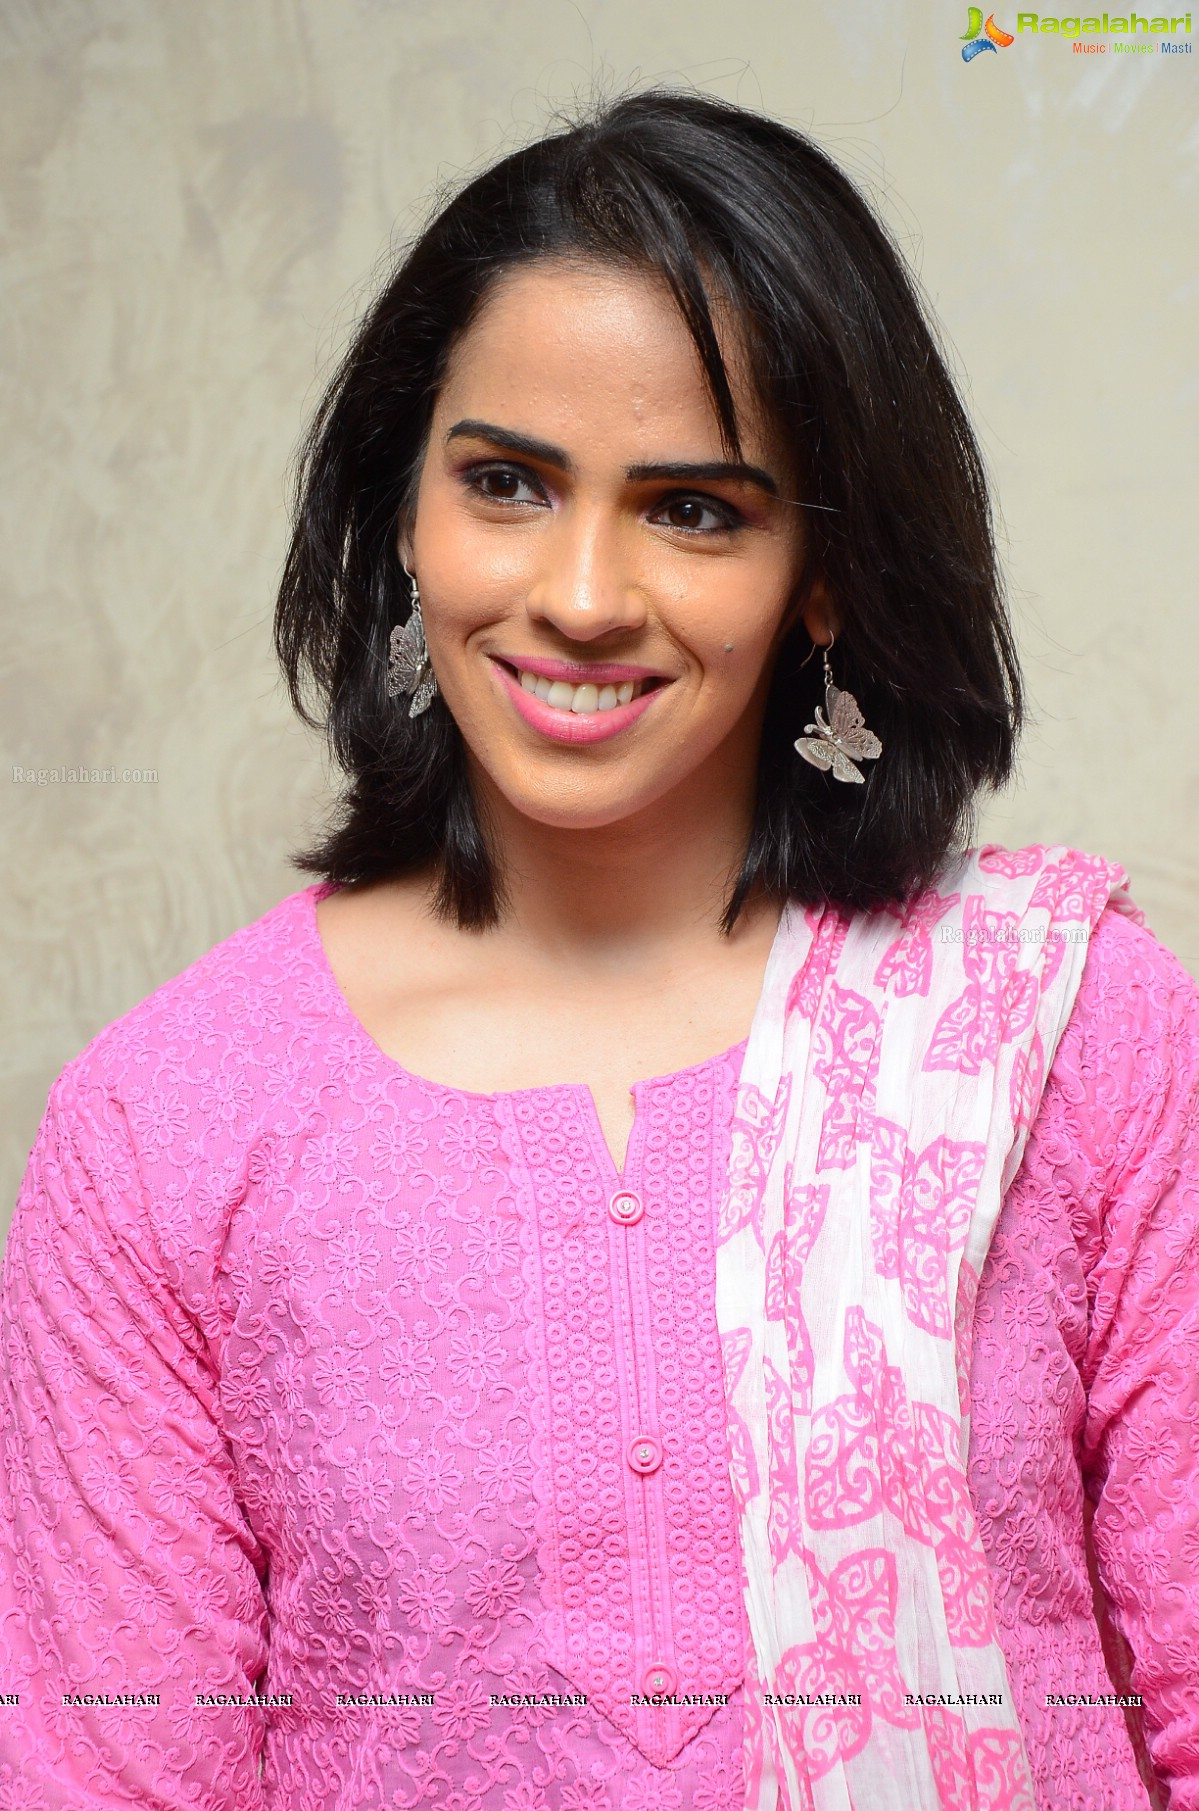 information on saina nehwal Saina nehwal, march 17, 1990, saina nehwal was born on march 17th, 1990, she is a professional badminton player who is also ranked as one of the world's best in the sport.